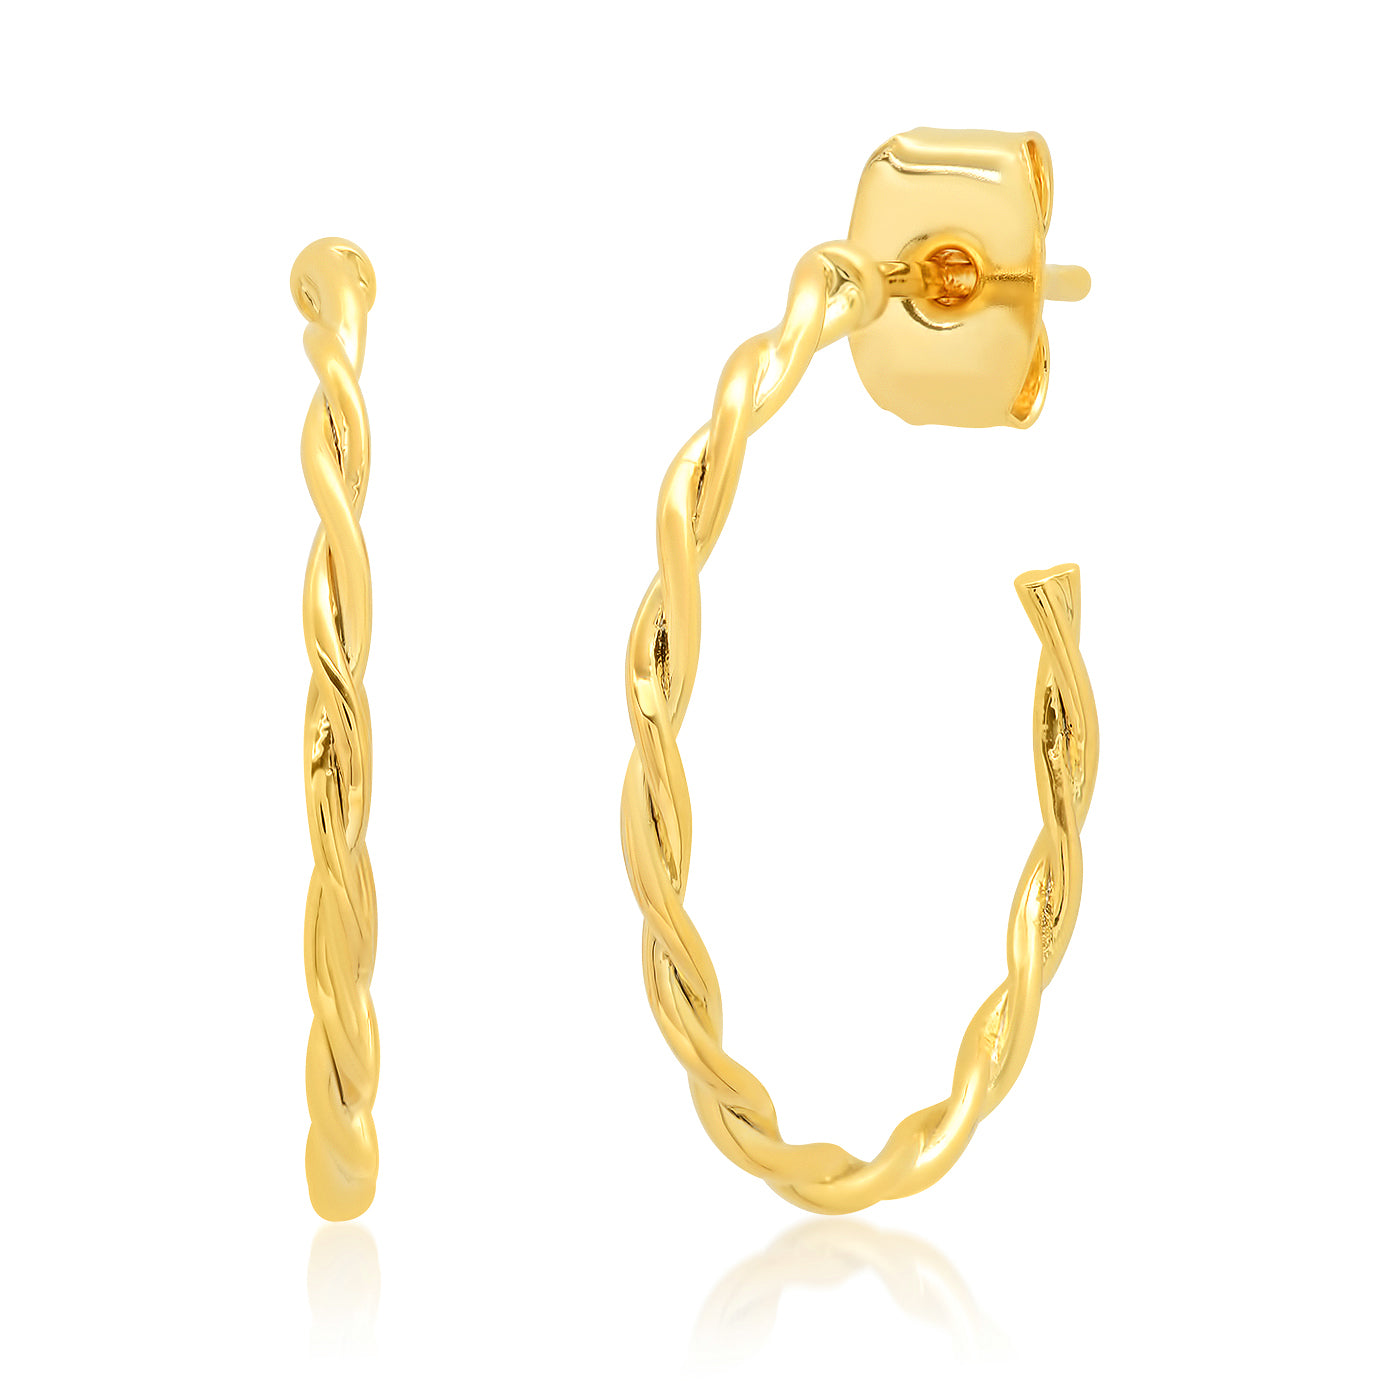 Braided Gold Hoop Earring